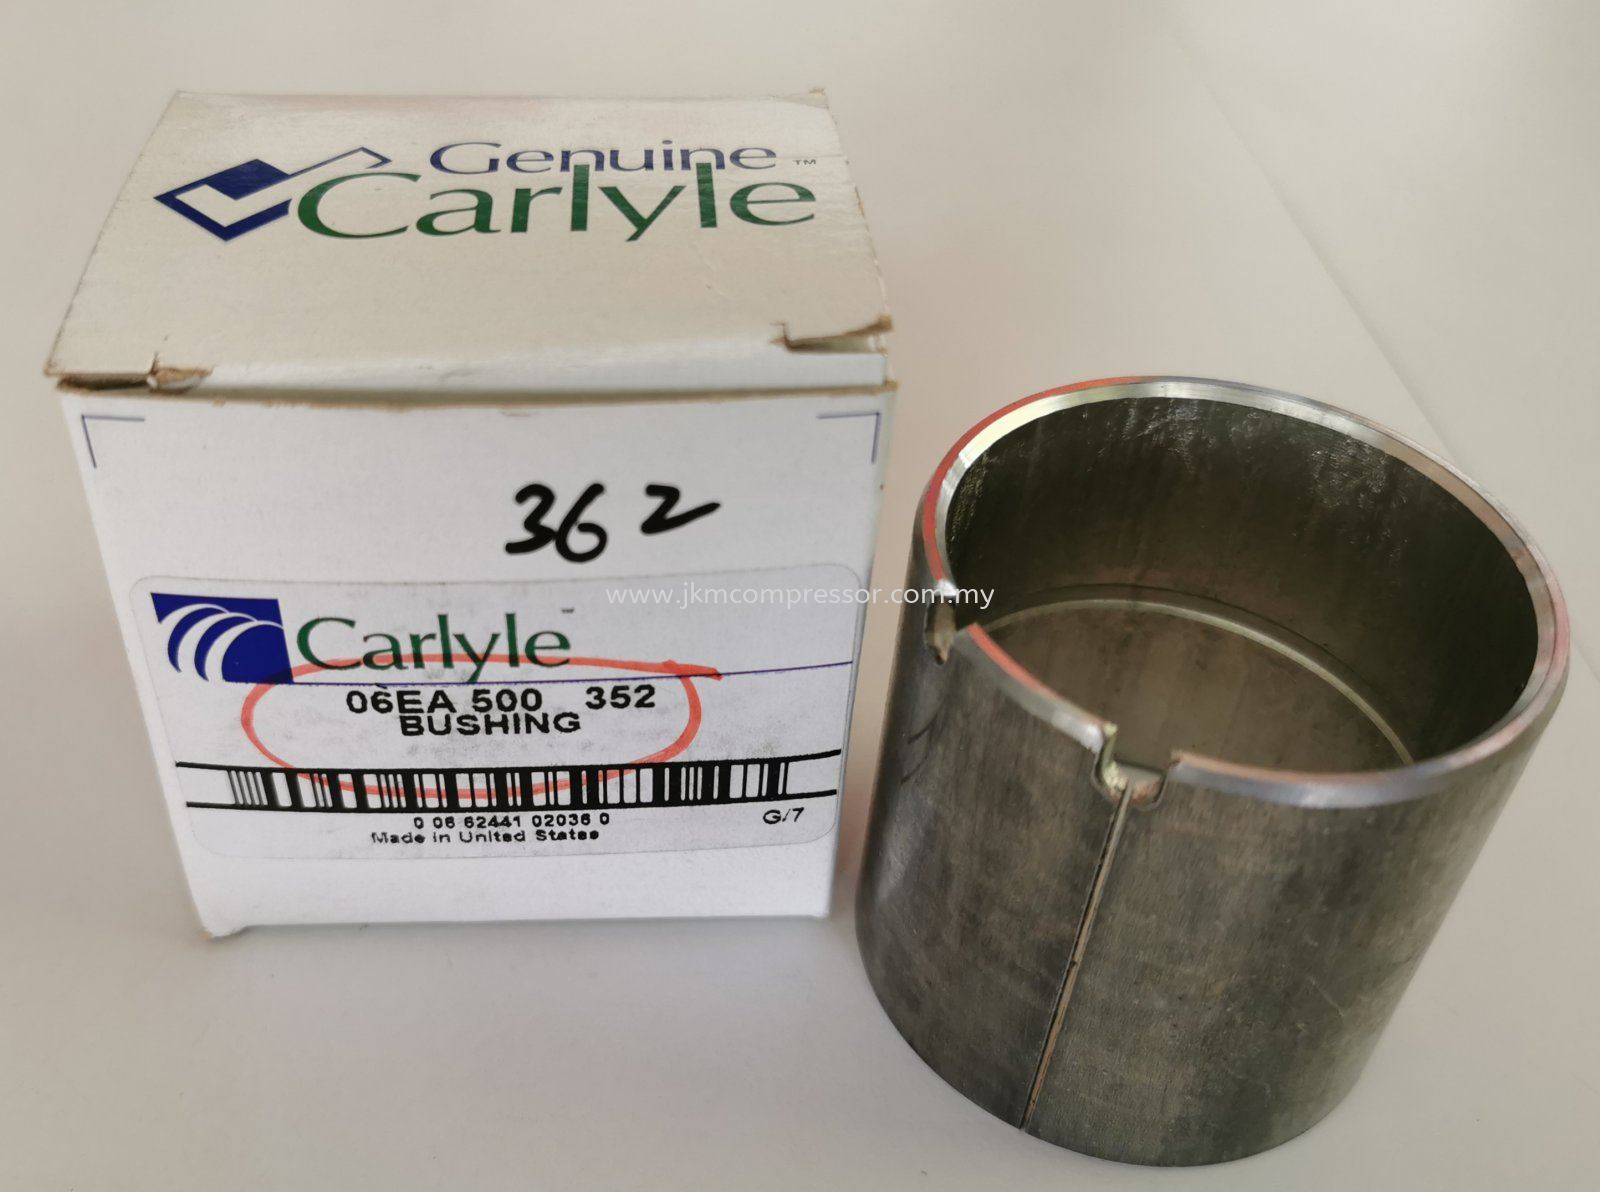 06EA500362-CARLYLE 06E COMPRESSOR BUSHING (MOTOR END) ; MAIN CENTRE BEARING (MOTOR END)